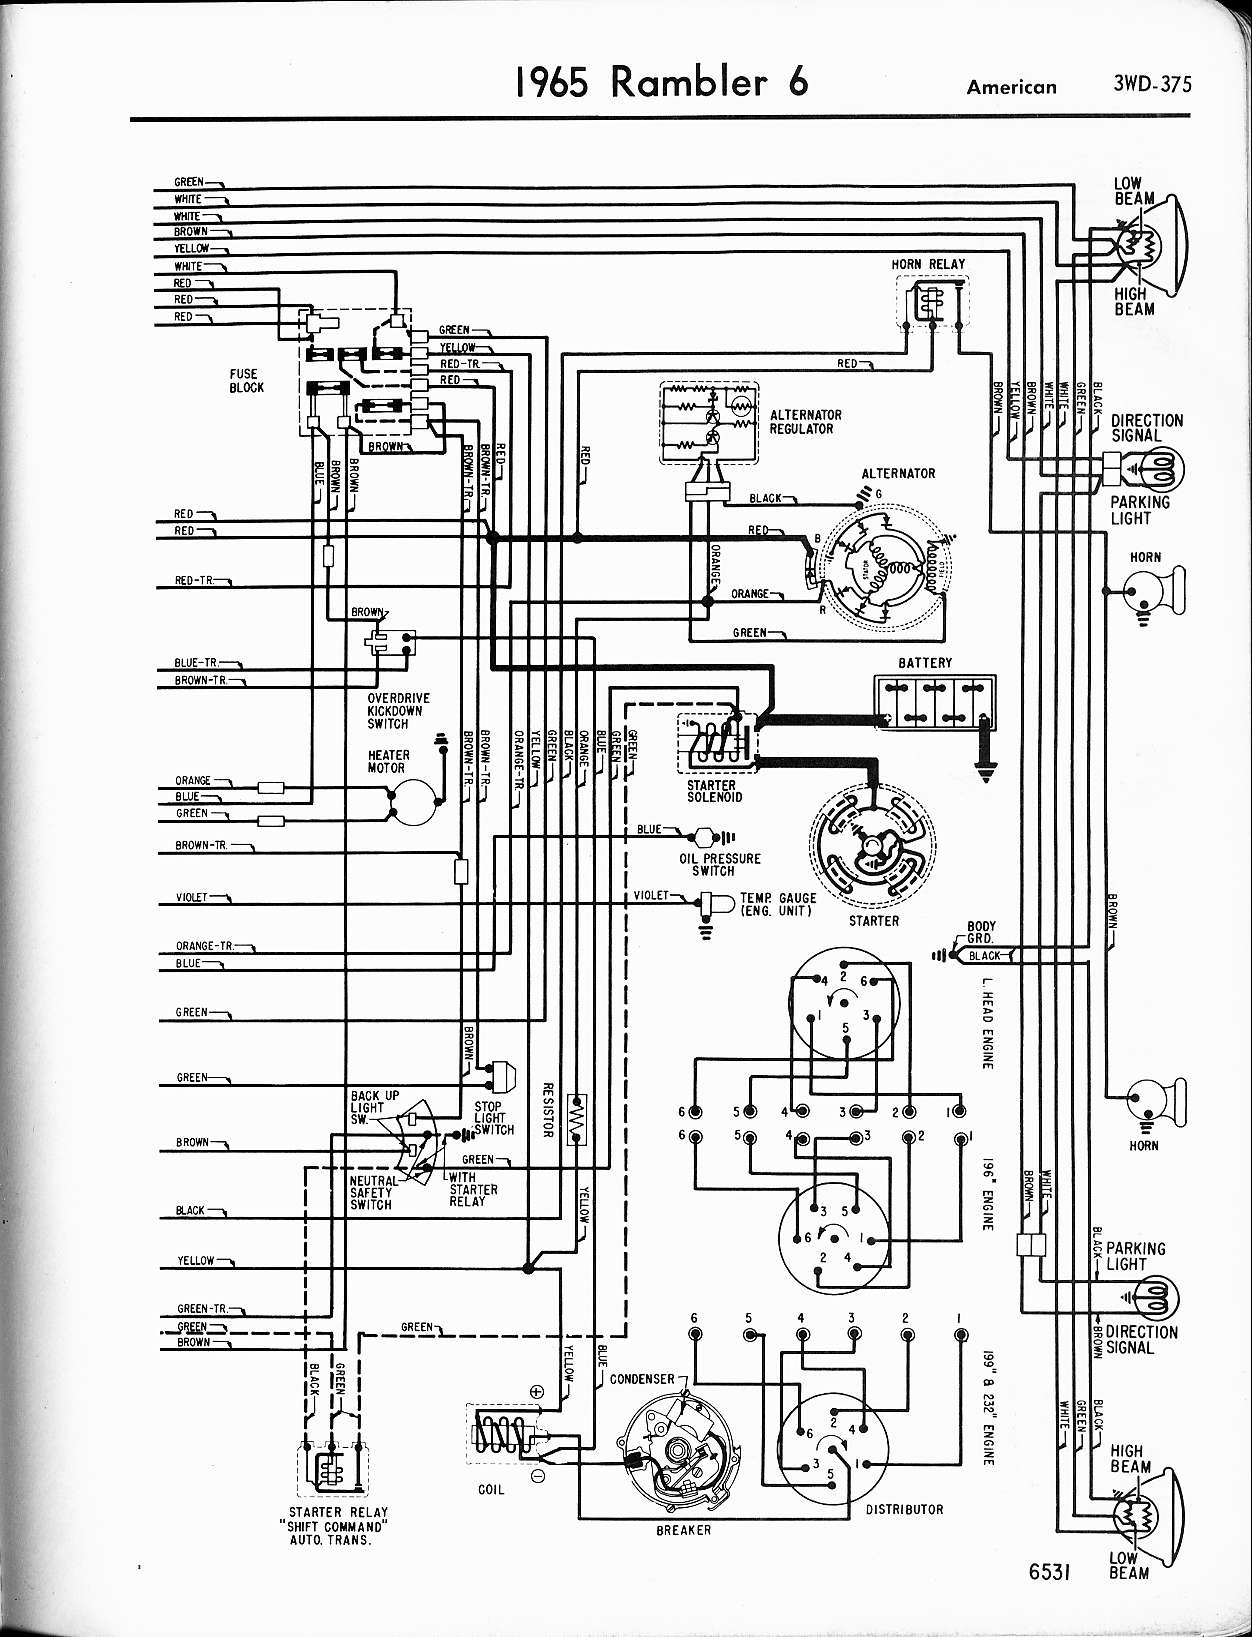 Schematic Holiday Rambler Wiring Diagram from www.oldcarmanualproject.com